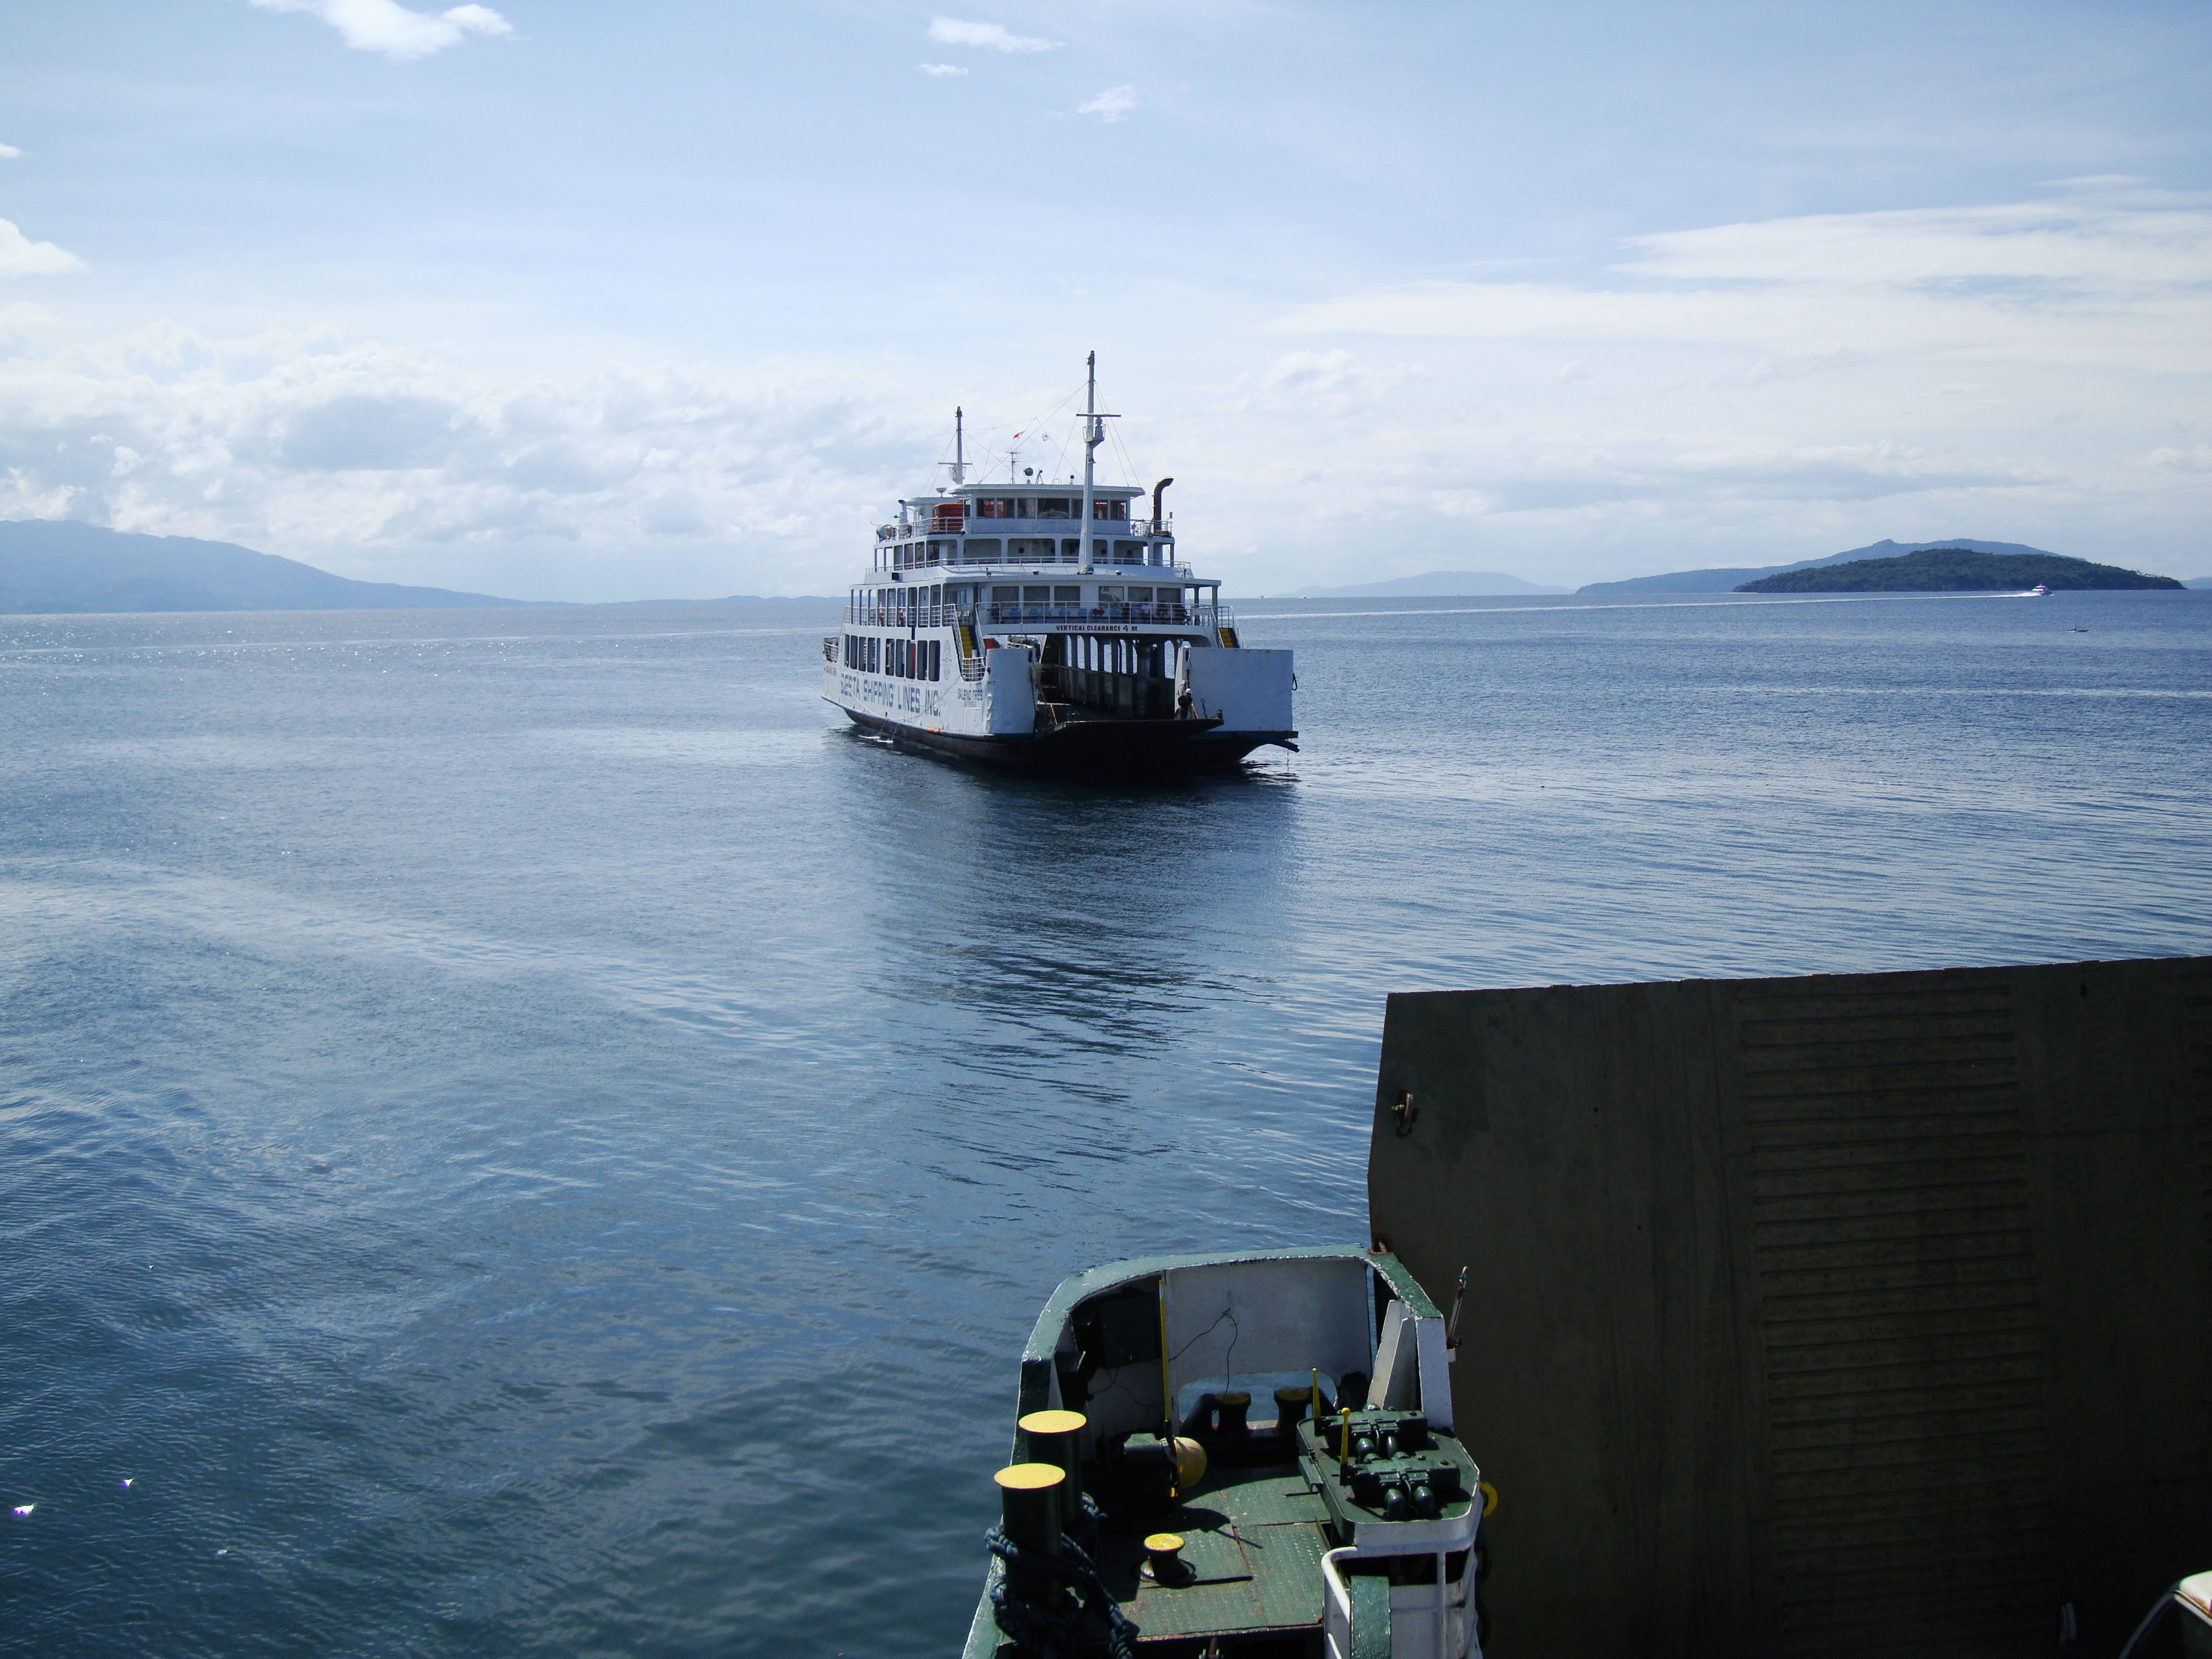 MV Baleno Tres car ferry Besa shipping lines Calapan Pier Philippines 01